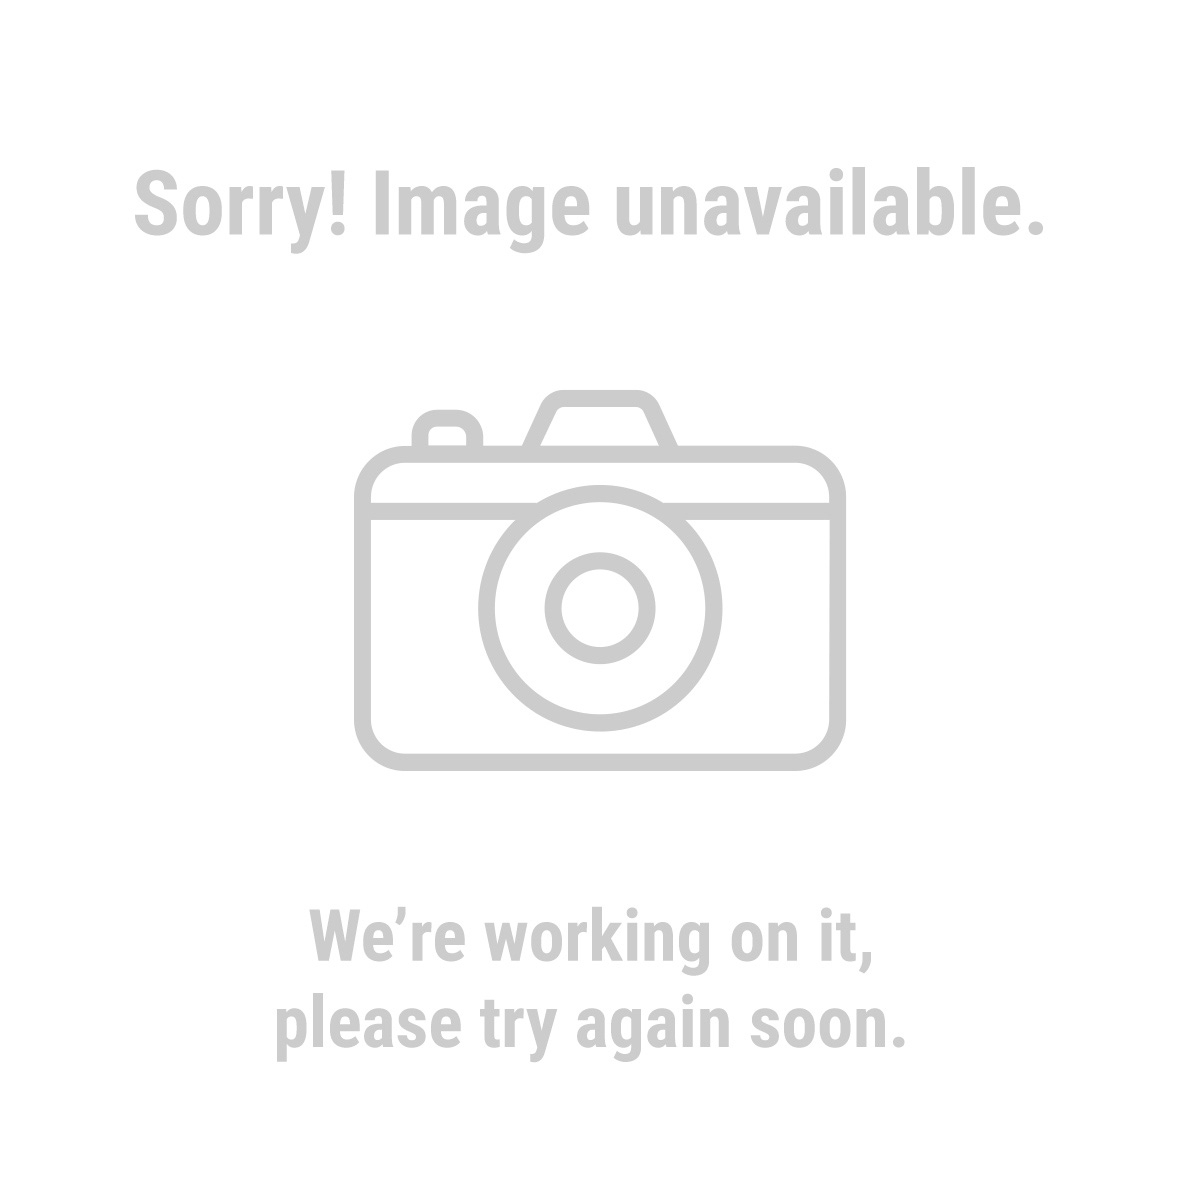 92733 Pack of 7 100 Grit Aluminum Oxide Sanding Sheets